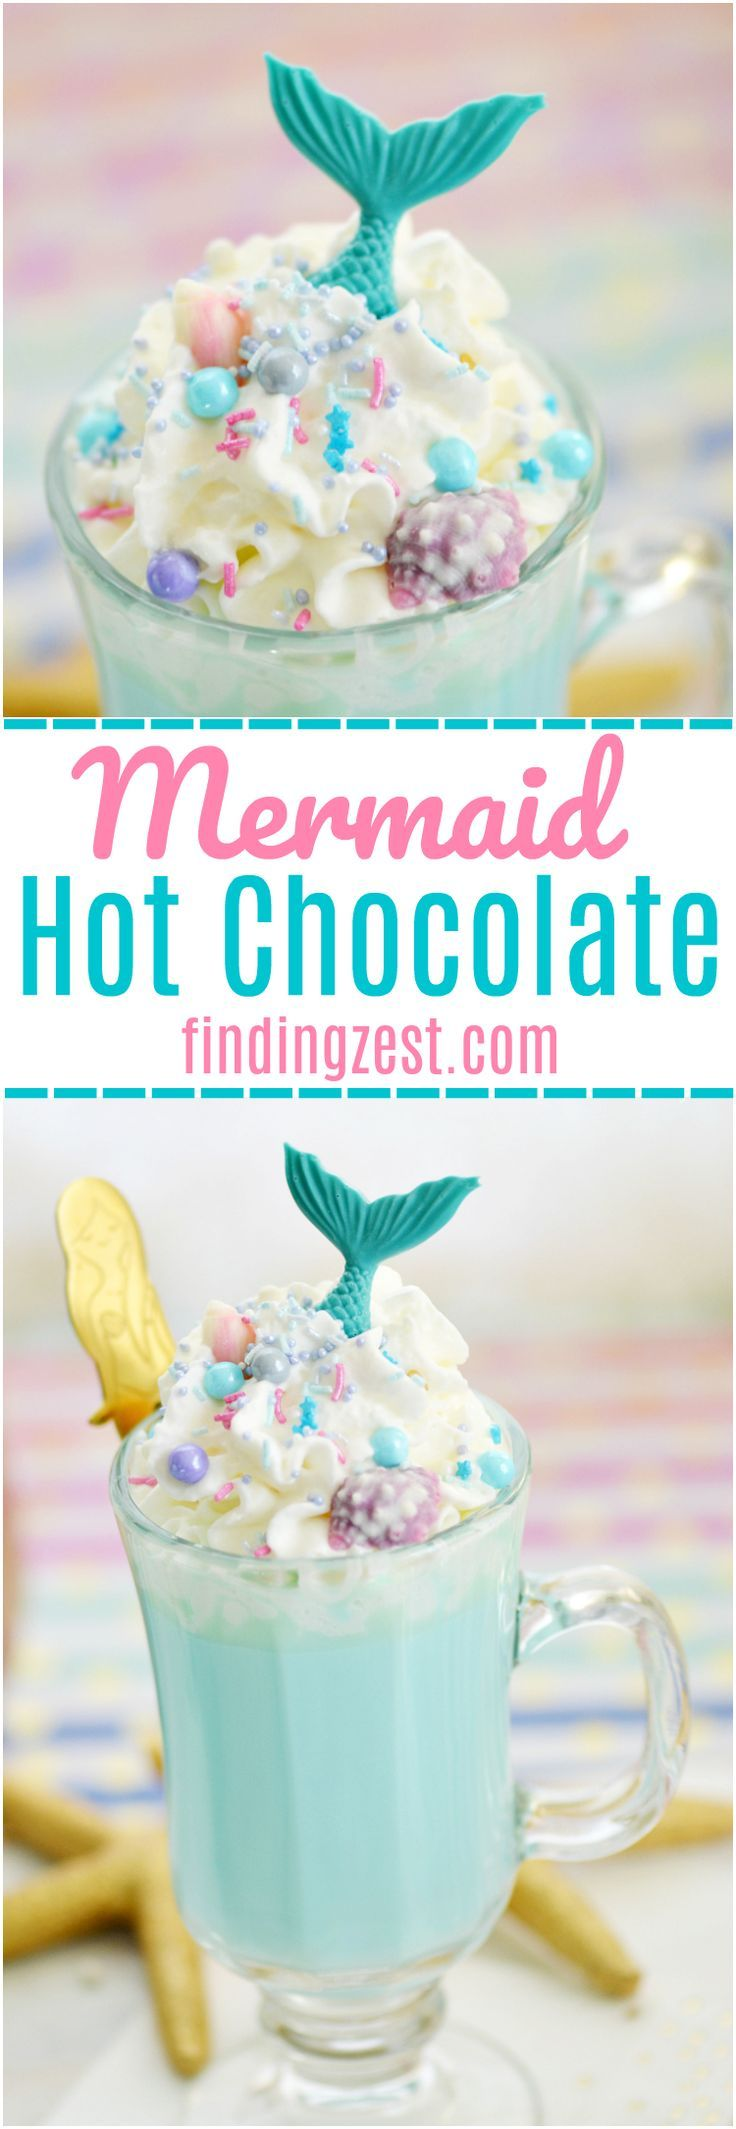 Make a cup of cocoa extraordinary with this Blue Mermaid Hot Chocolate recipe You have to try it! Using homemade white hot chocolate, this delicious blue drink is loaded with fun sprinkles, whipped cream and topped with a chocolate mermaid tail. Mermaid lovers of all ages will go nuts for this hot mermaid drink! Perfect to serve guests at a mermaid birthday party. The mermaid spoons also make great party favors.#mermaid #hotchocolate #mermaidparty #sweeettooth #mermaidlife #drinkrecipes